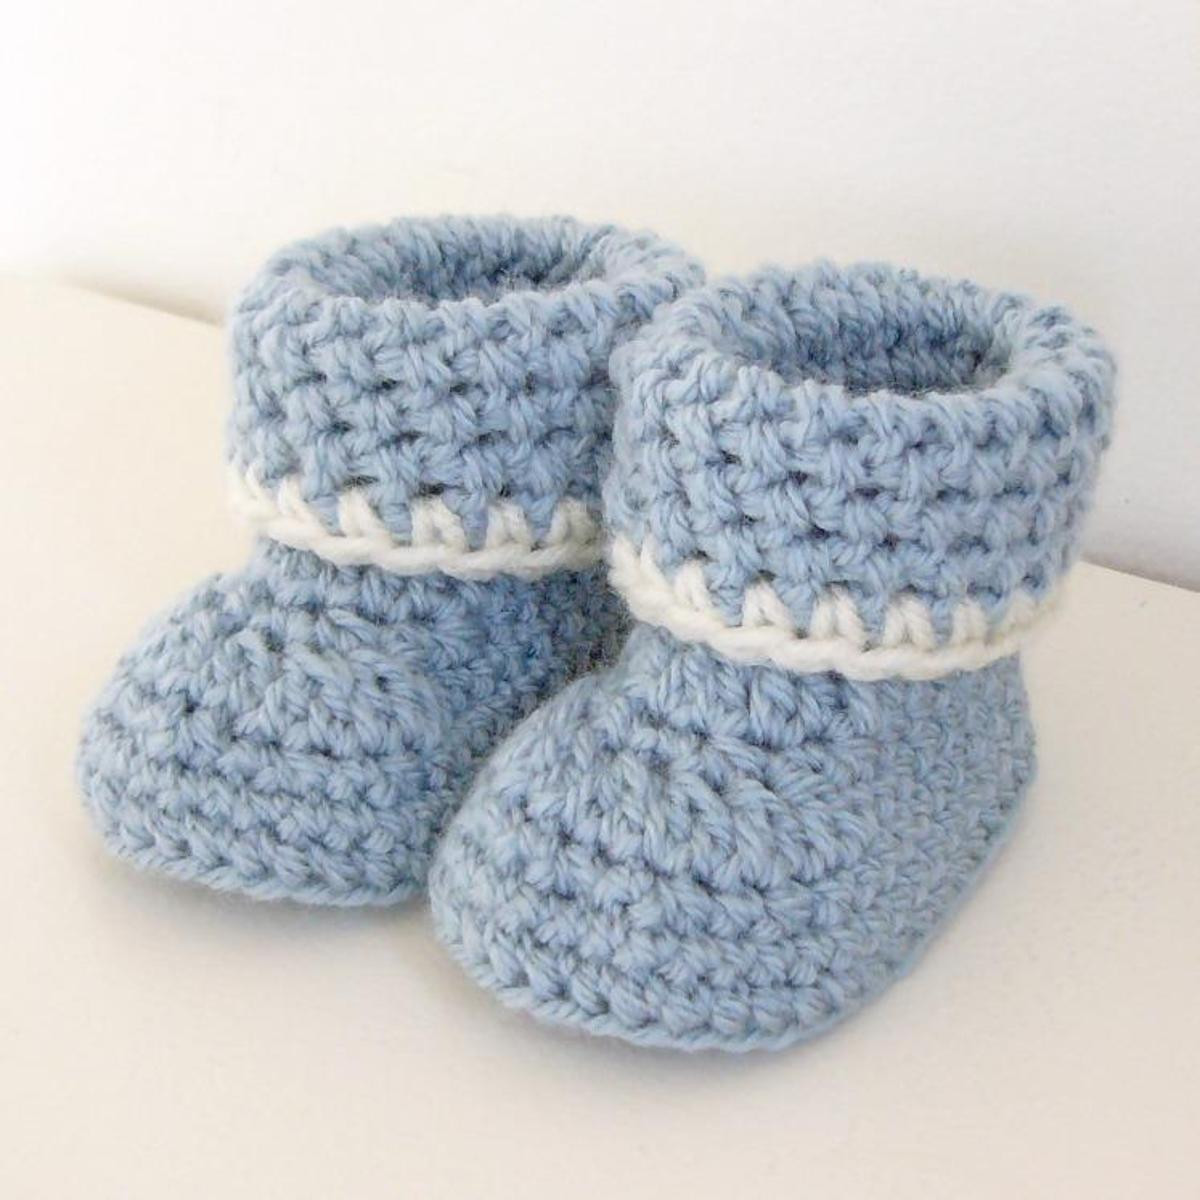 Elegant Cozy Cuffs Crochet Baby Booties Pattern Crochet Baby Shoes Pattern Of Delightful 50 Pictures Crochet Baby Shoes Pattern